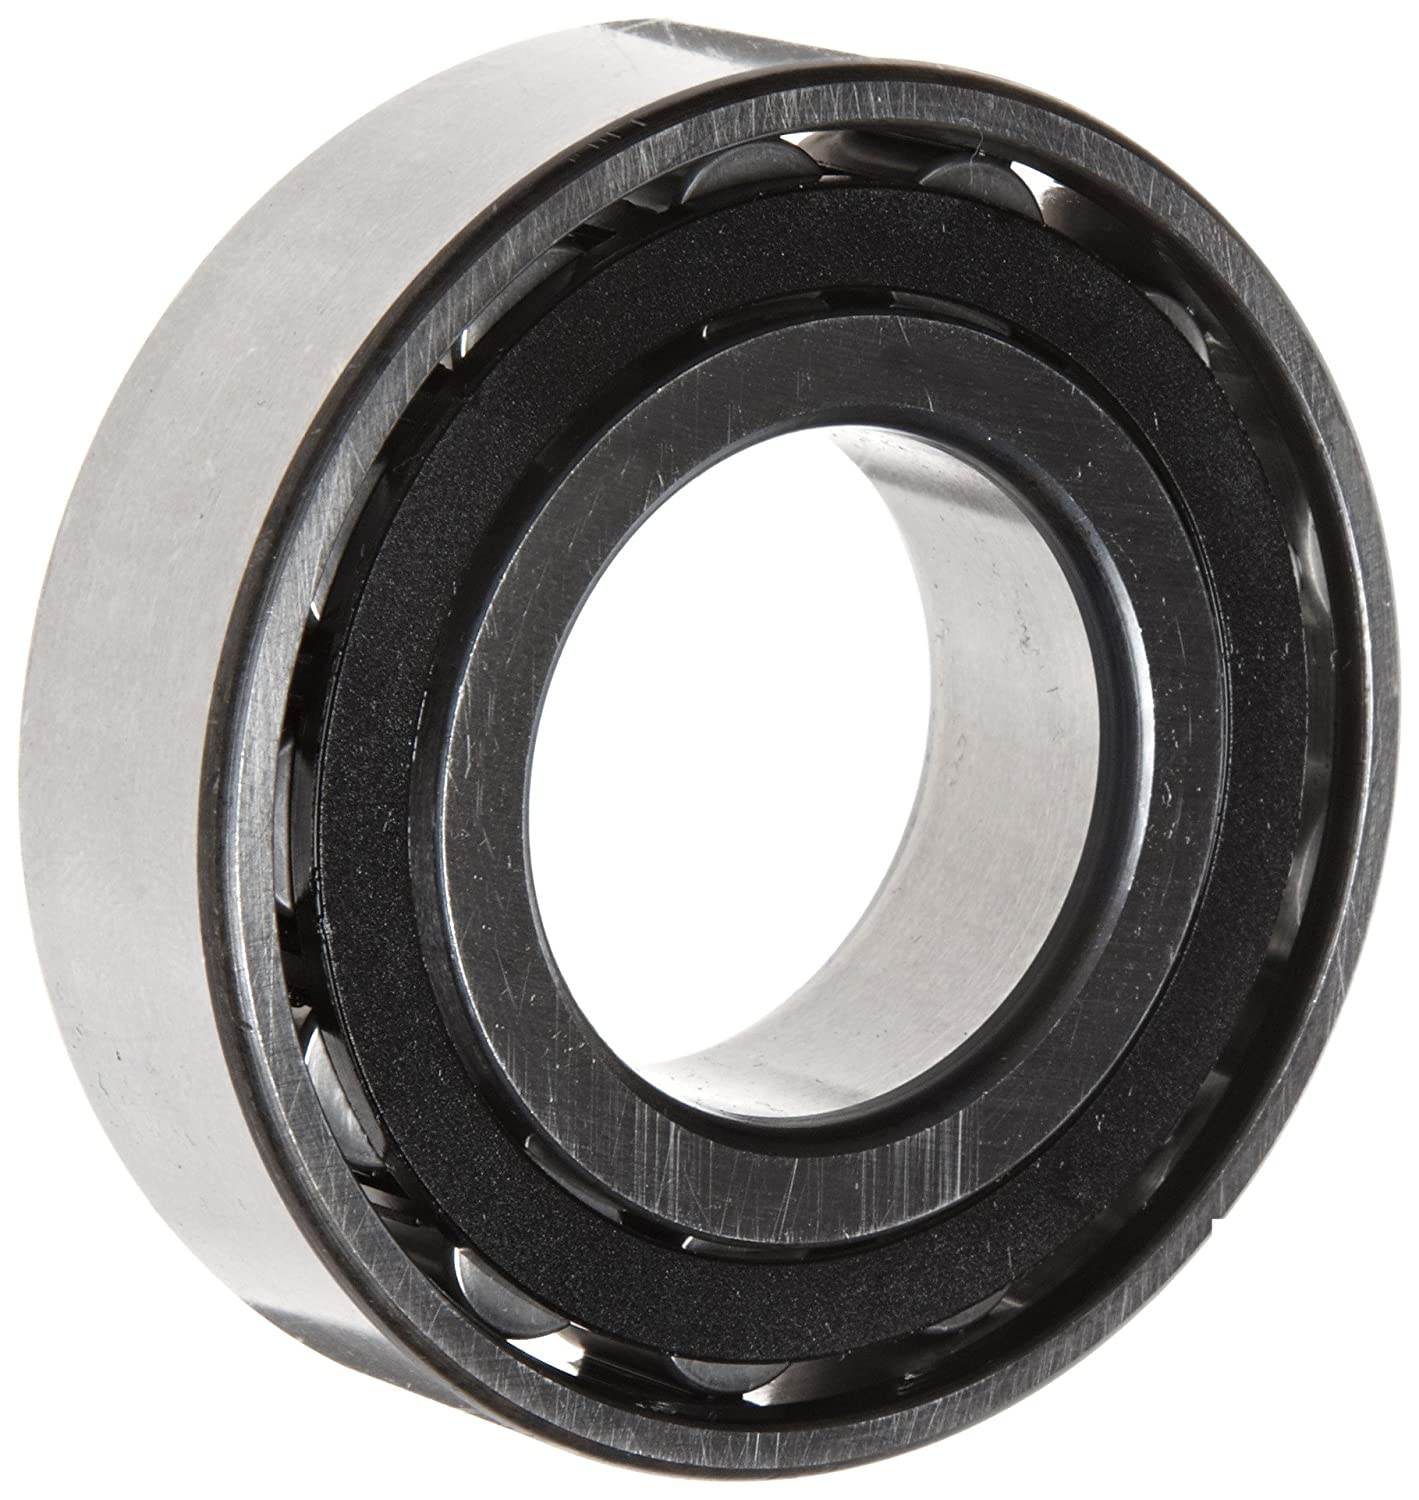 62mm OD N206-E-TVP2 Metric Normal Clearance 16mm Width Schaeffler Technologies Co Straight Bore 30mm ID Removable Outer Ring High Capacity FAG N206E-TVP2 Cylindrical Roller Bearing Single Row